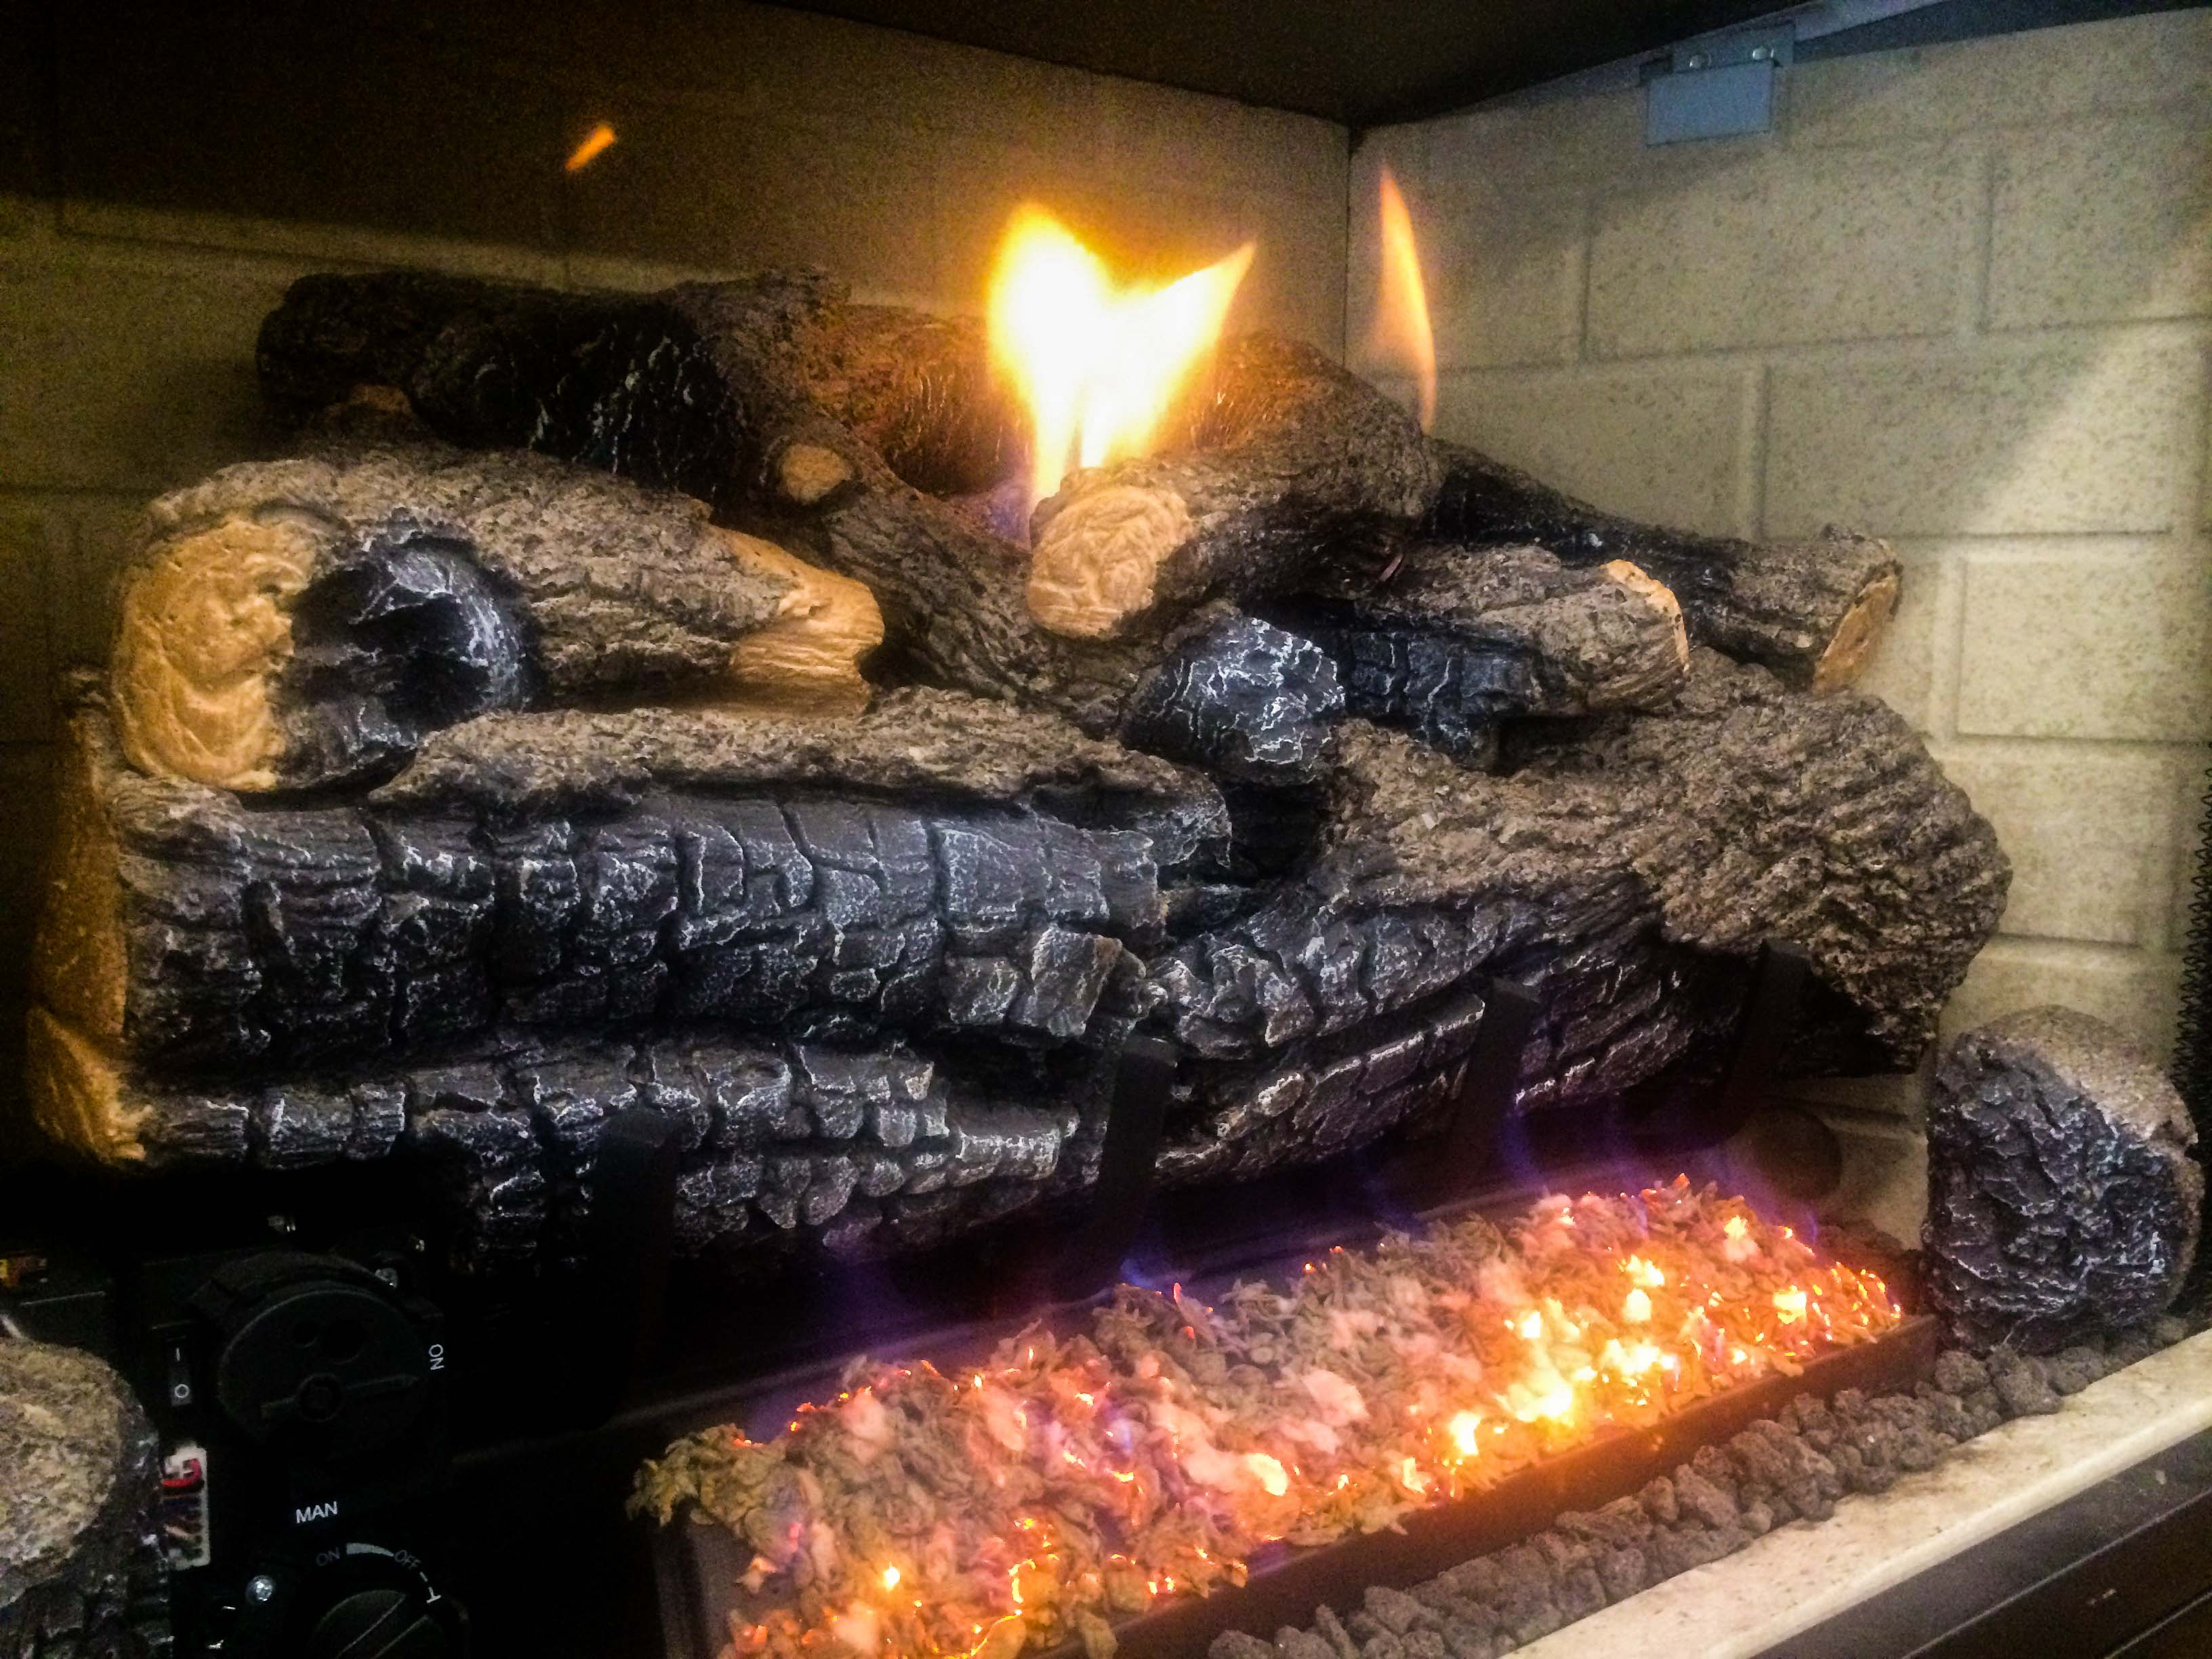 Fireplace Gas Logs Gas Logs For Fireplace Used Fireplace Inserts With Blower Parts Gas Fire